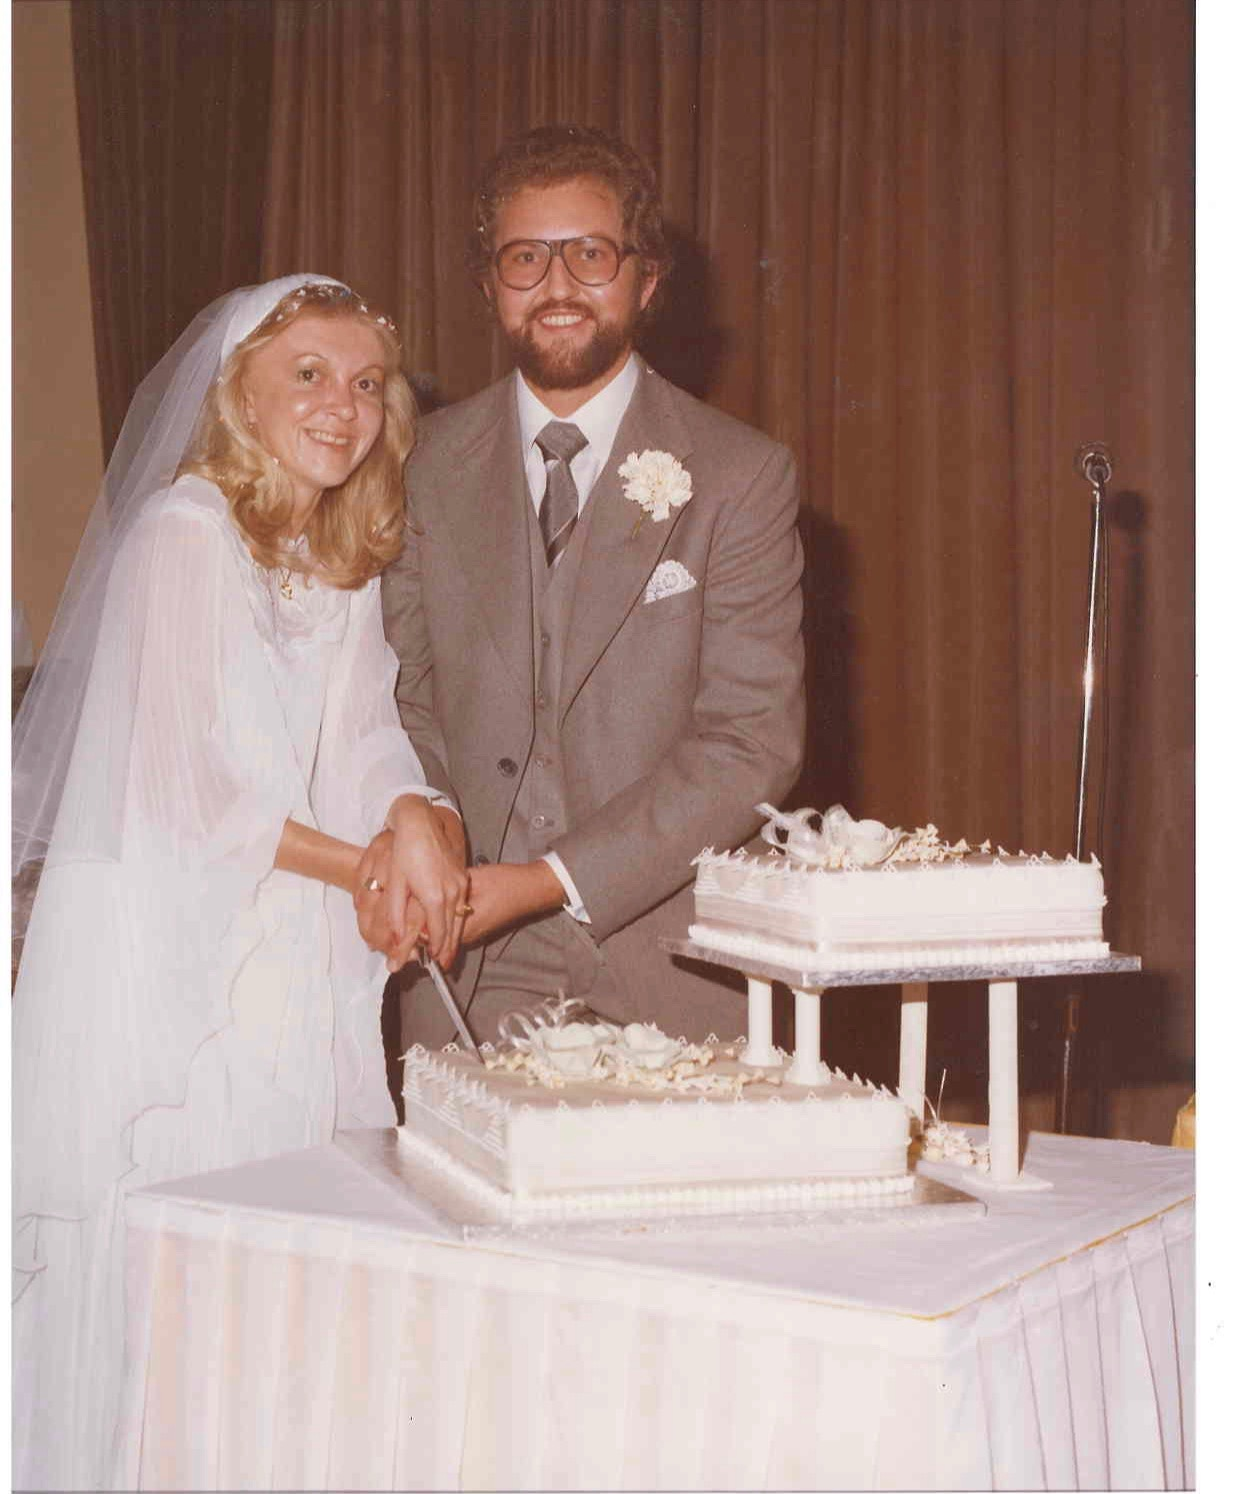 Mom and Dad Wedding 26:05:79